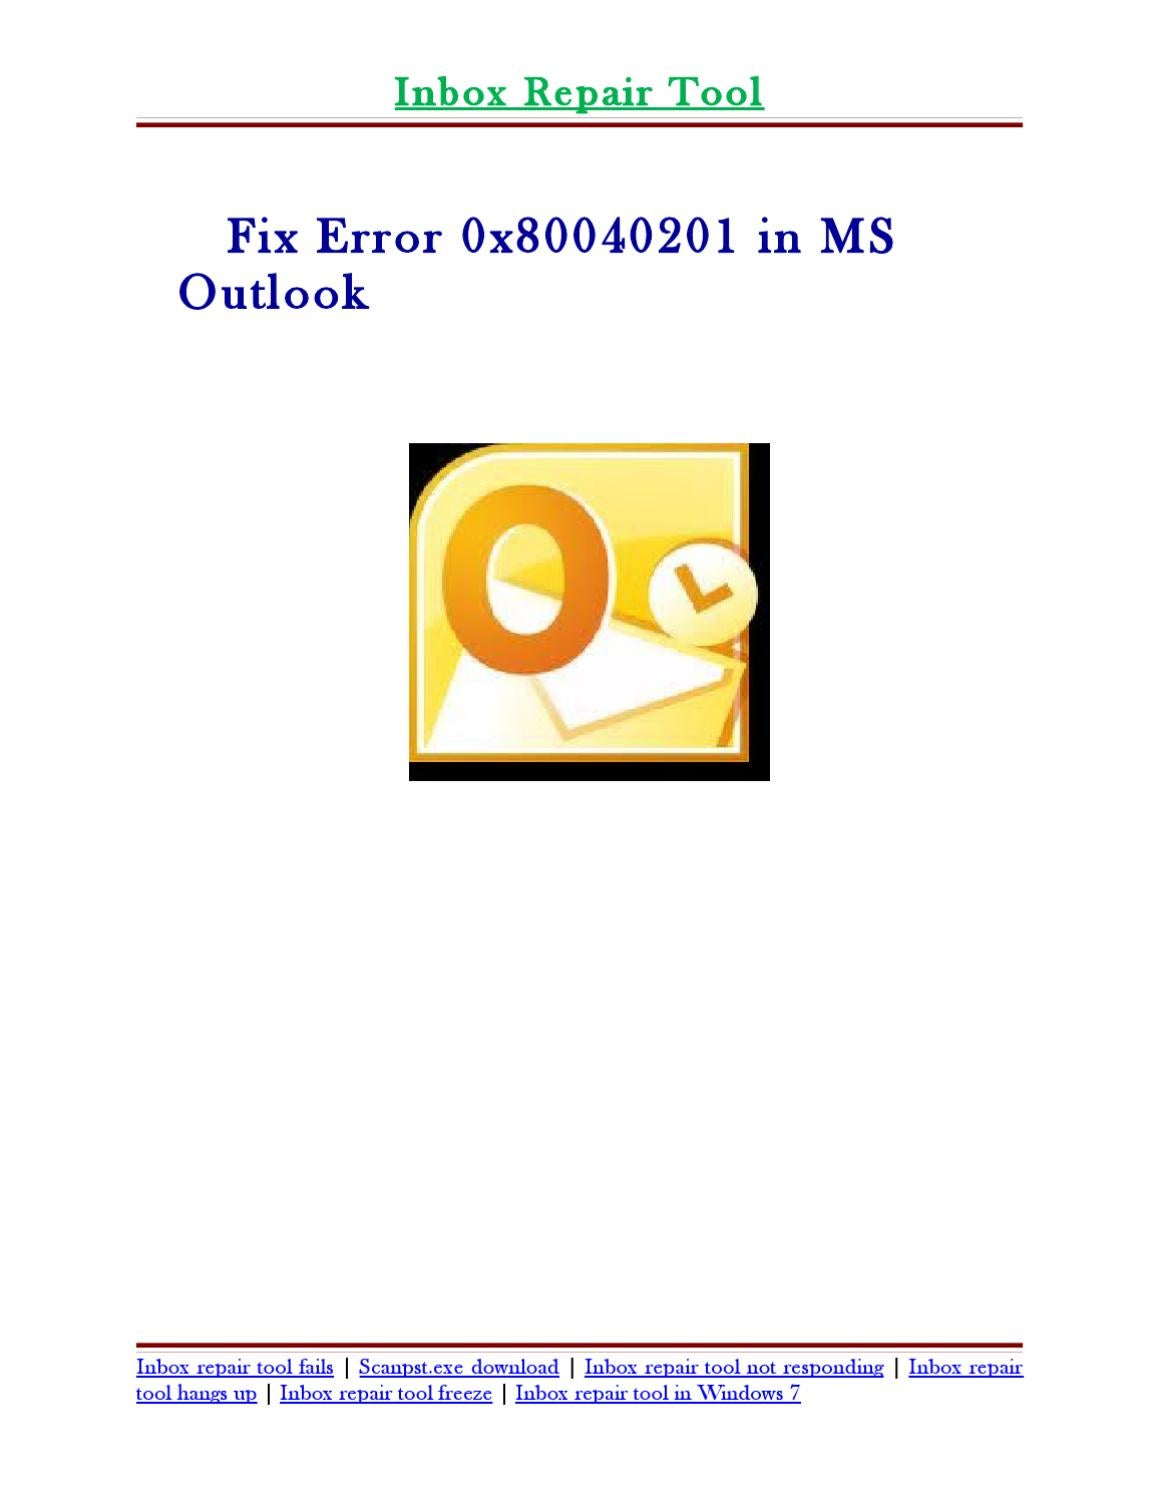 Fix Error 0x80040201 in MS Outlook by Caroline Brown - issuu